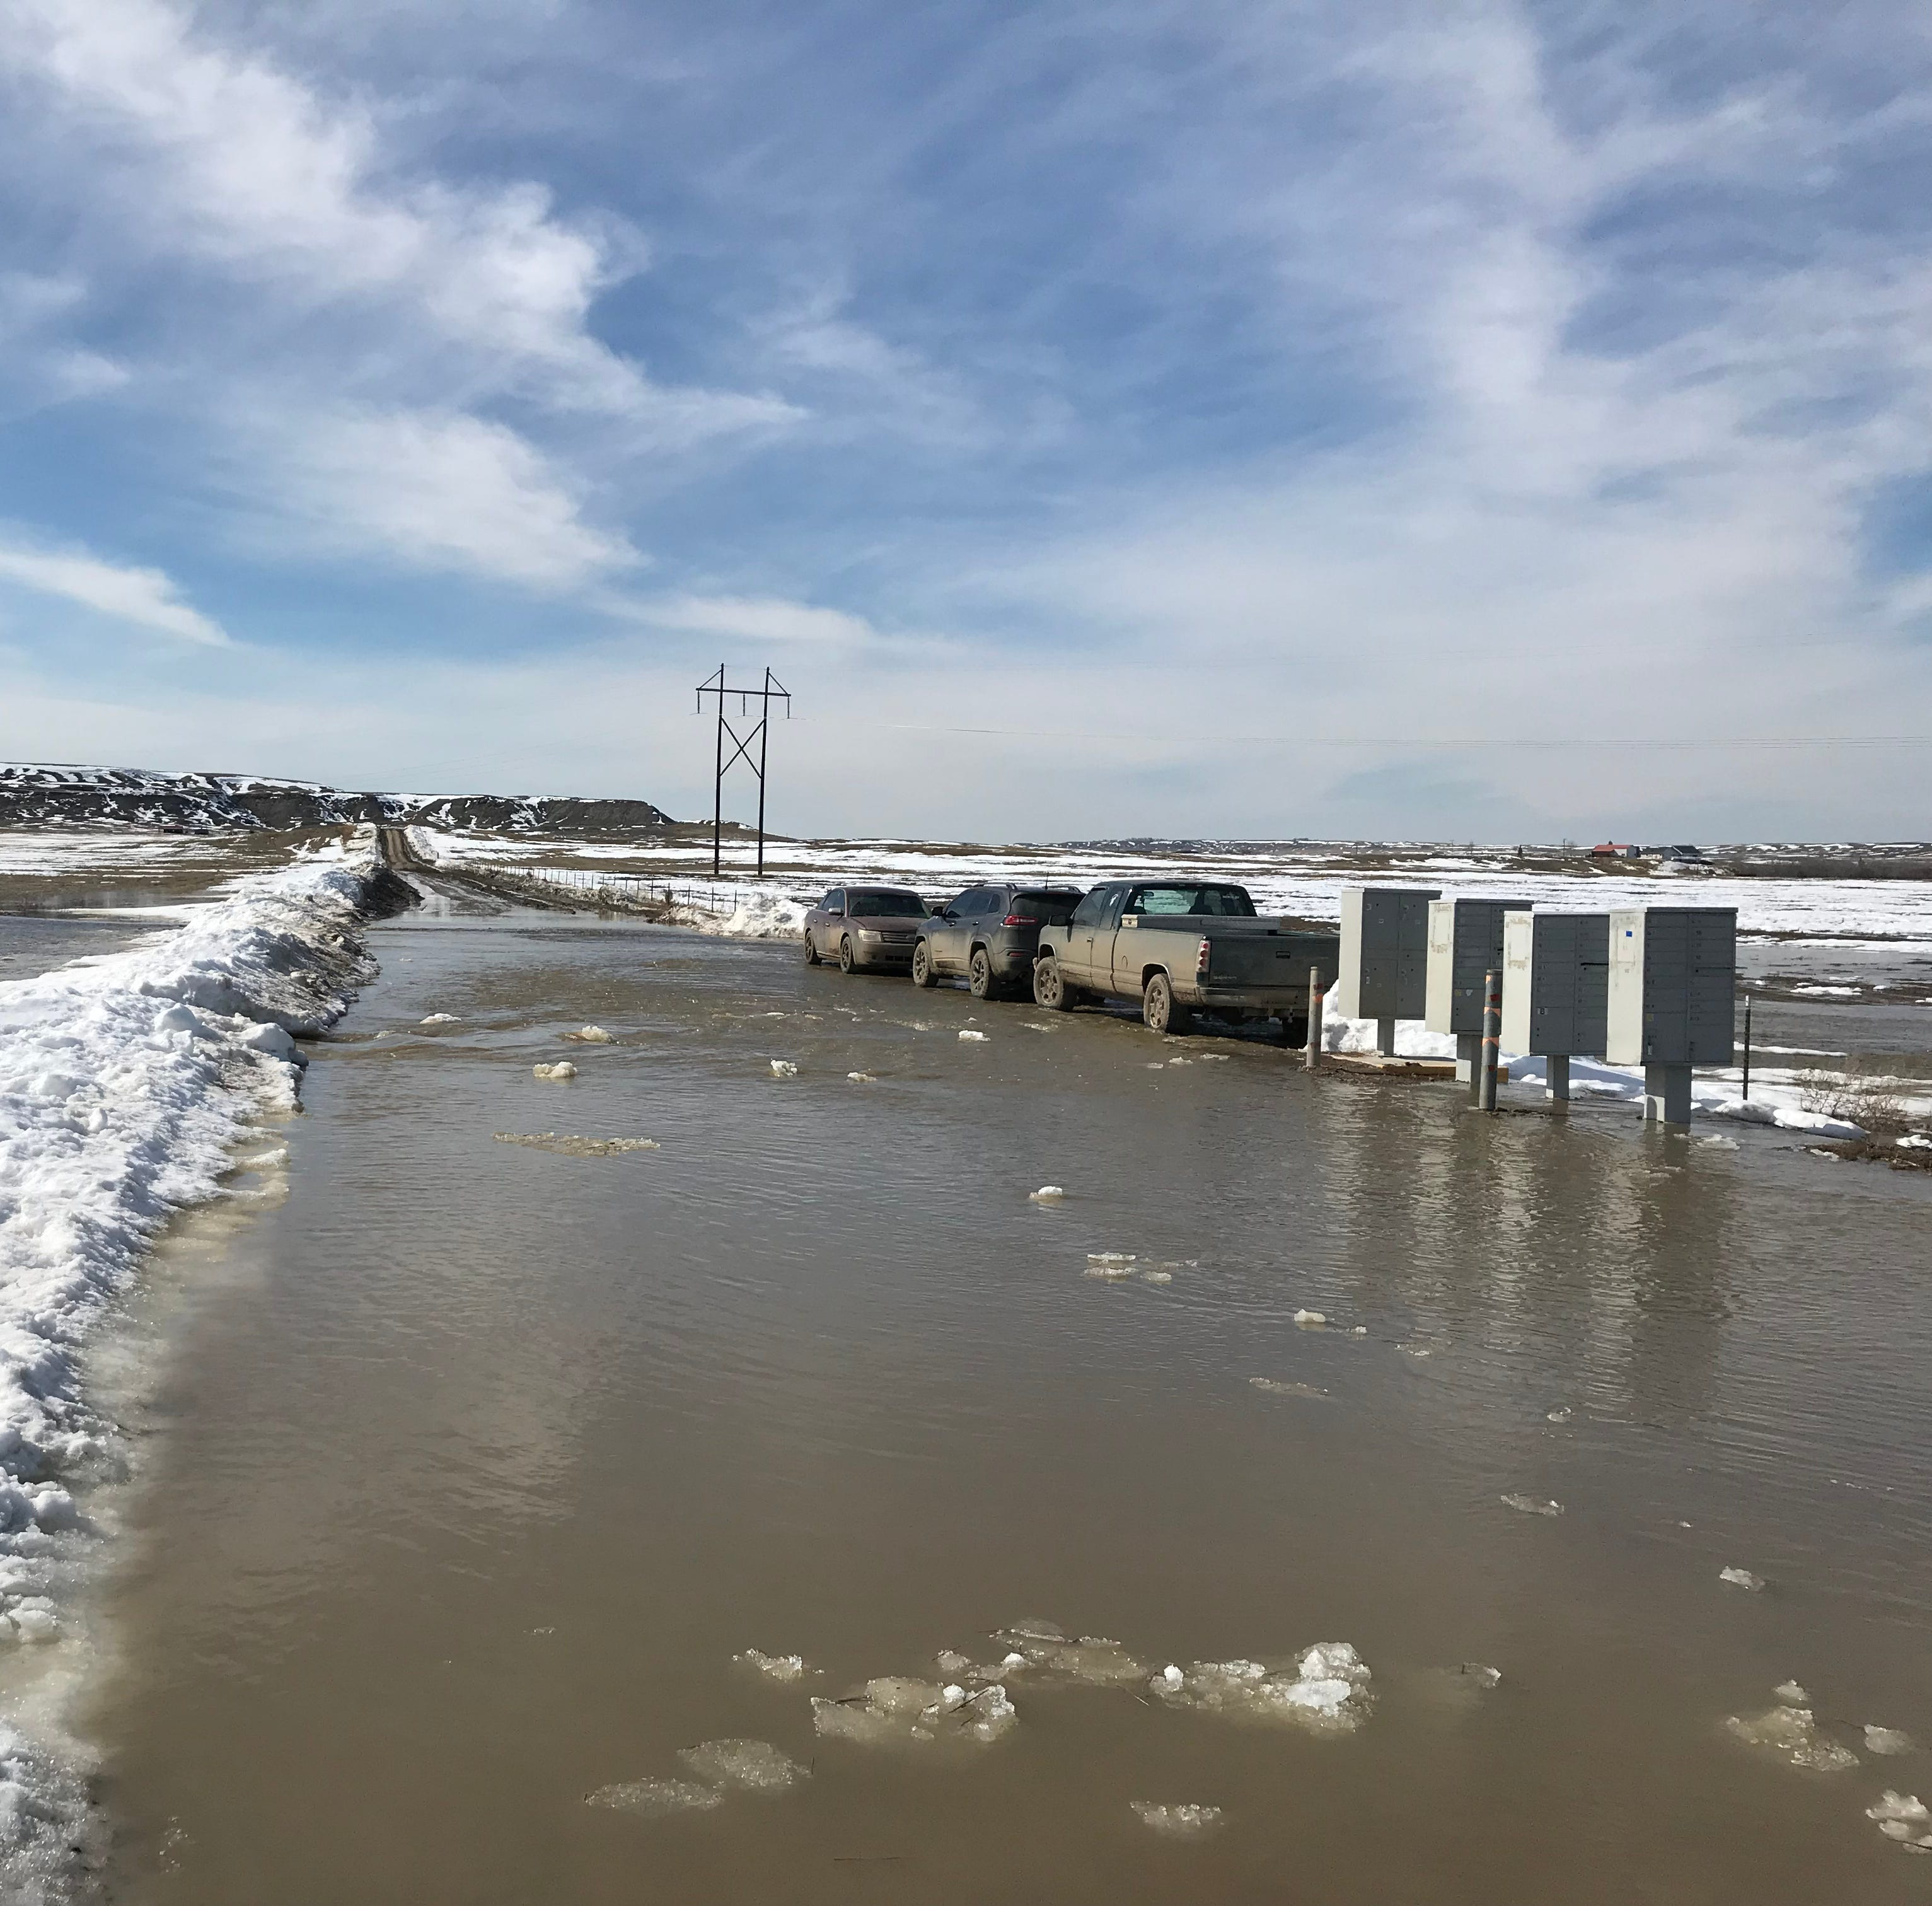 Water pouring over roads in Cascade, Chouteau Counties